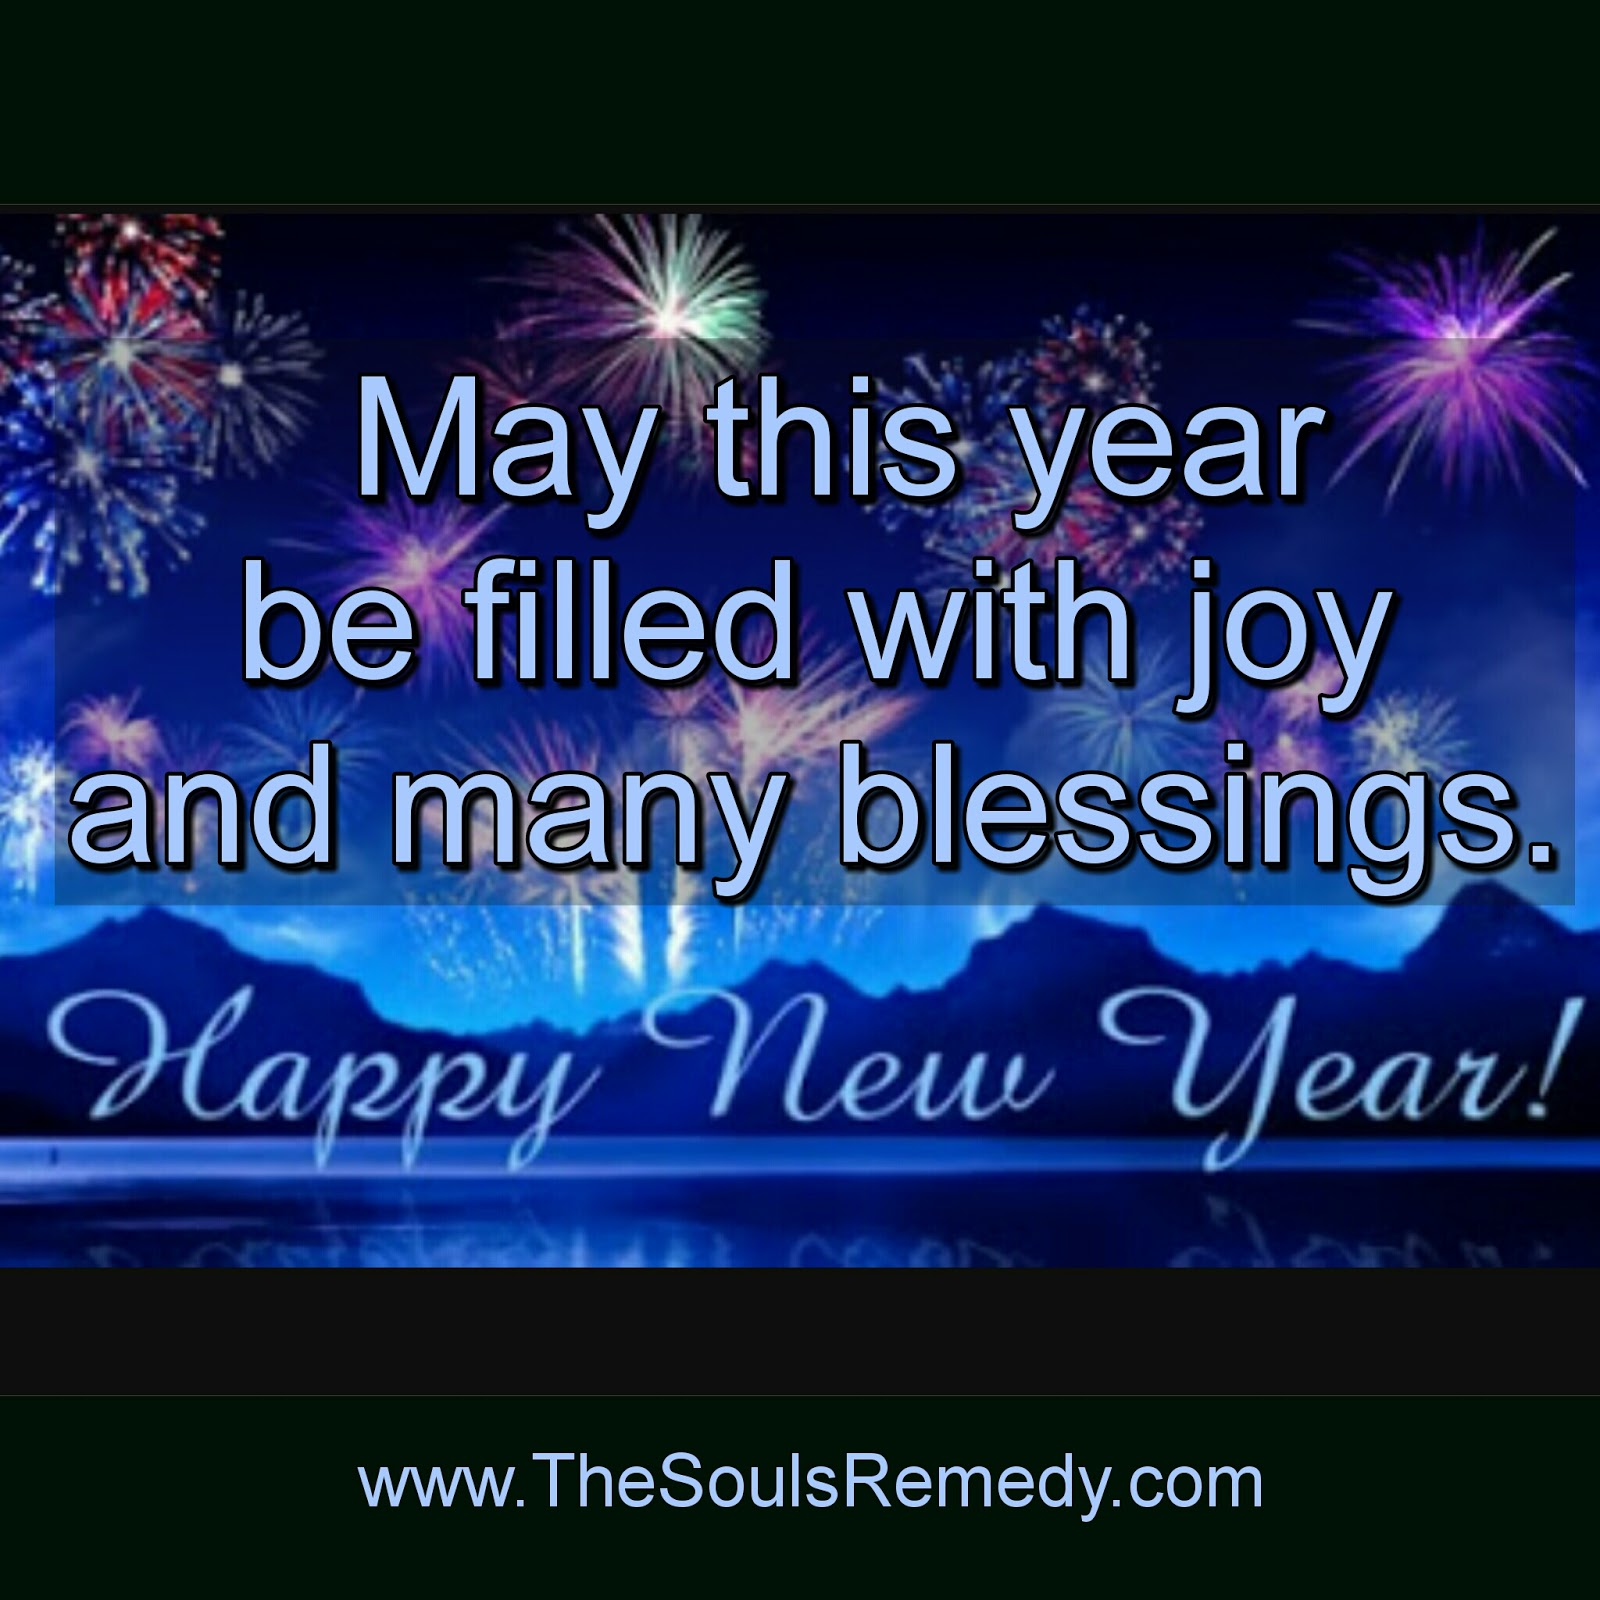 The Souls Remedy: 2017 New Year Prayer